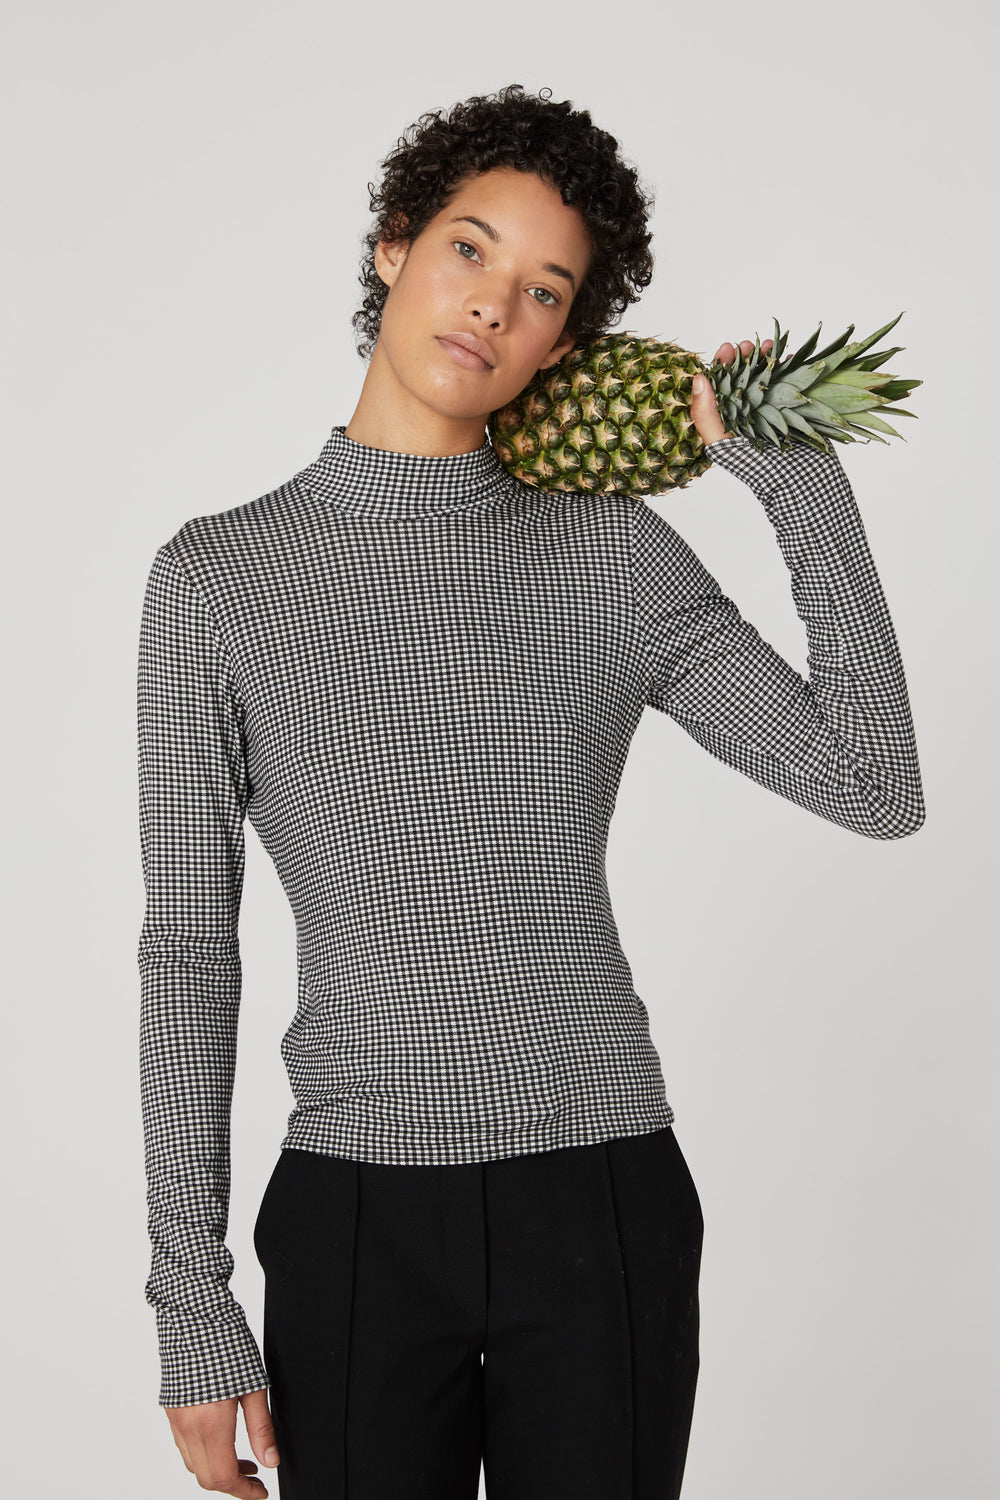 Rosie Assoulin Fall 2019 Turtleneck Top. Long-sleeve jersey mockneck. Zipper in back. Black plaid. 95% Viscose, 5% Elastane. Sizes 0 - 12.